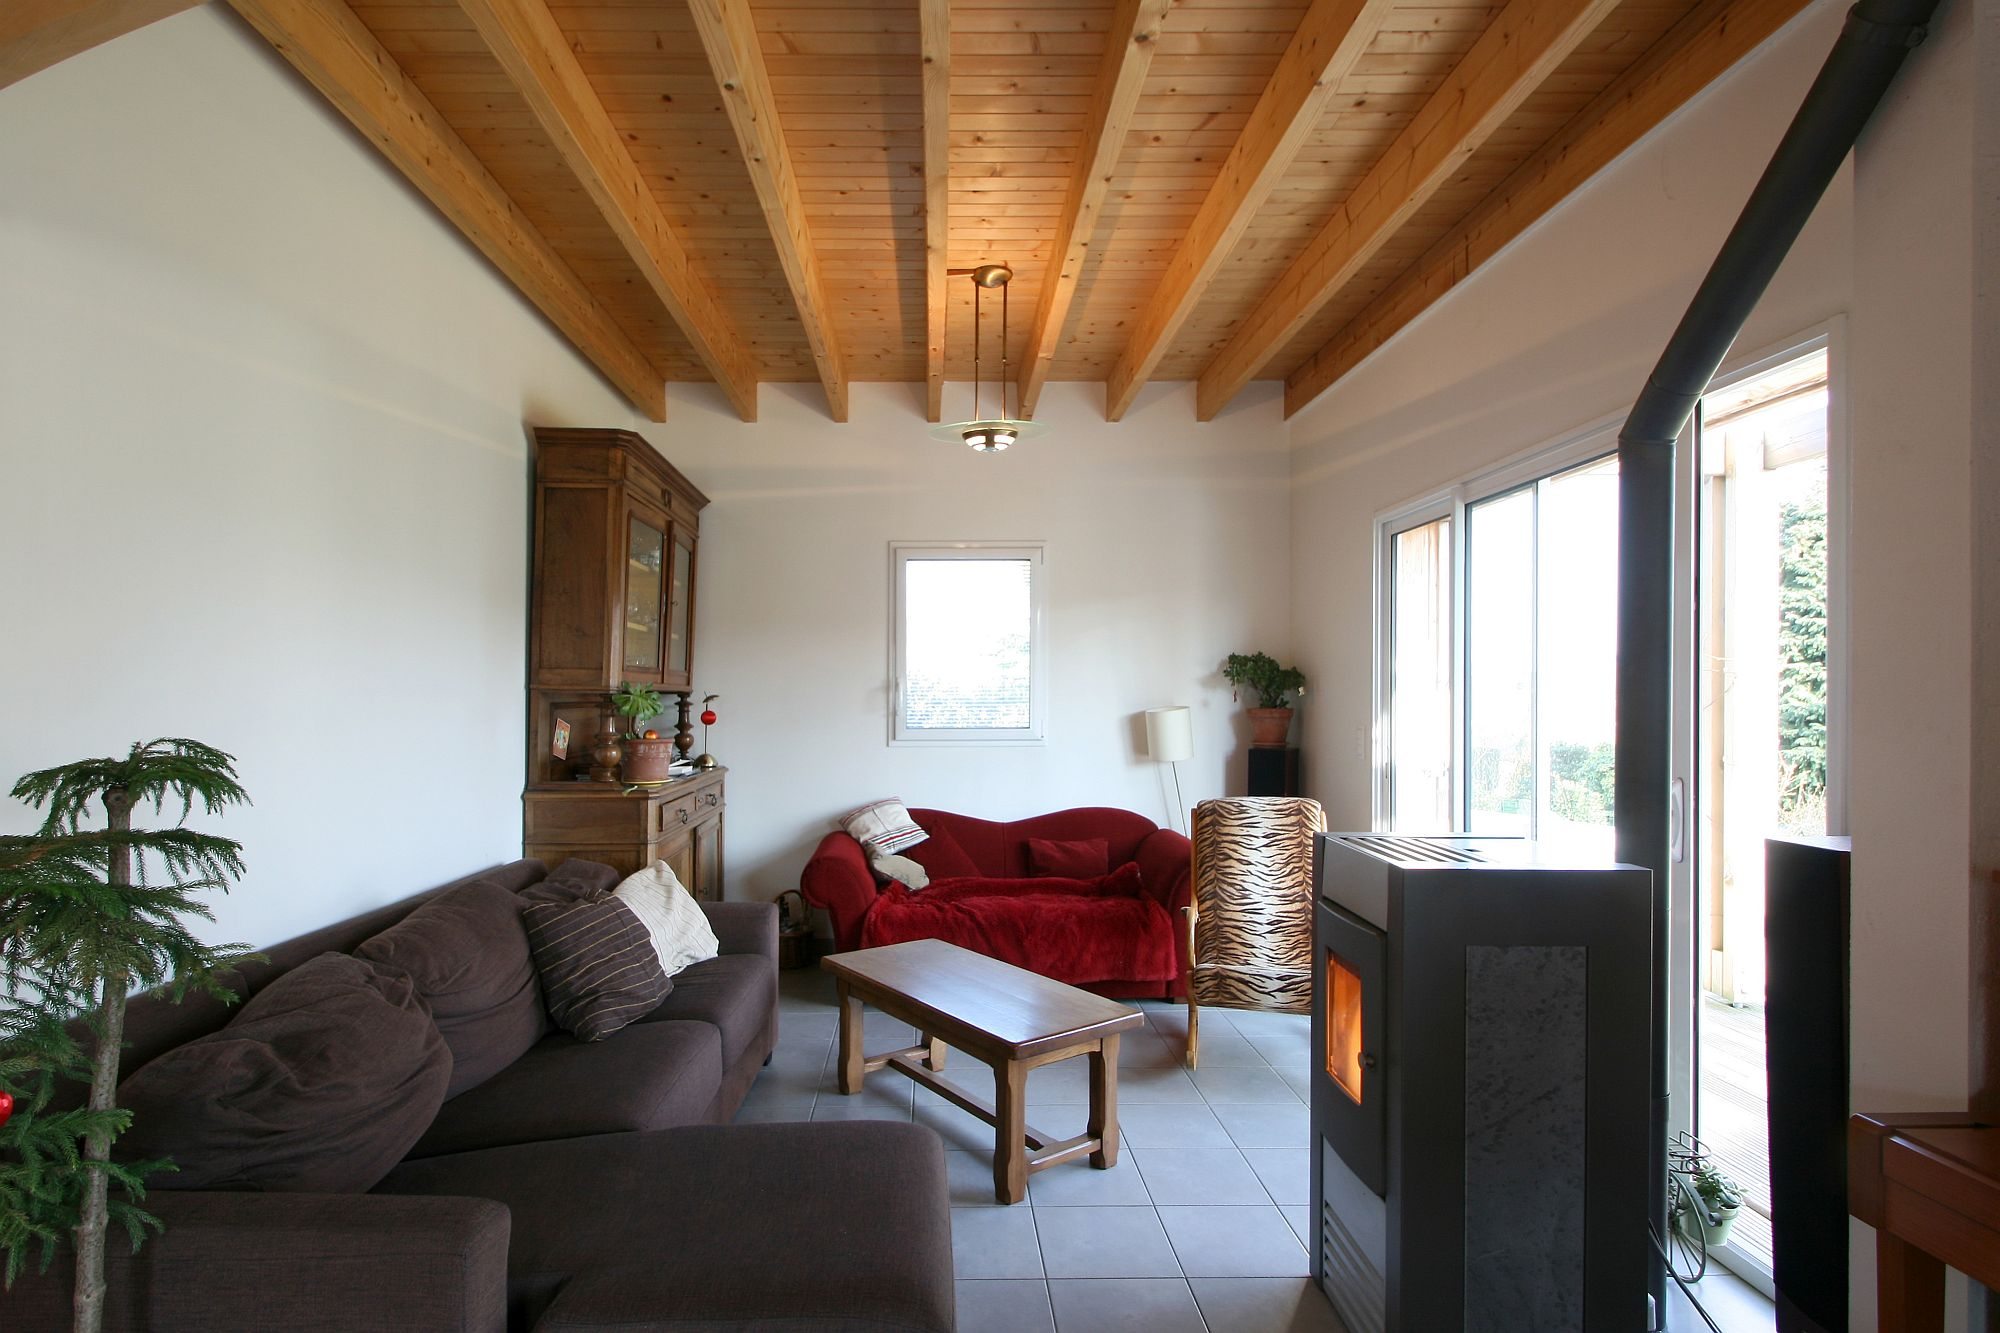 Cozy and charming living area of the house with exquisite decor and a lovely little fireplace